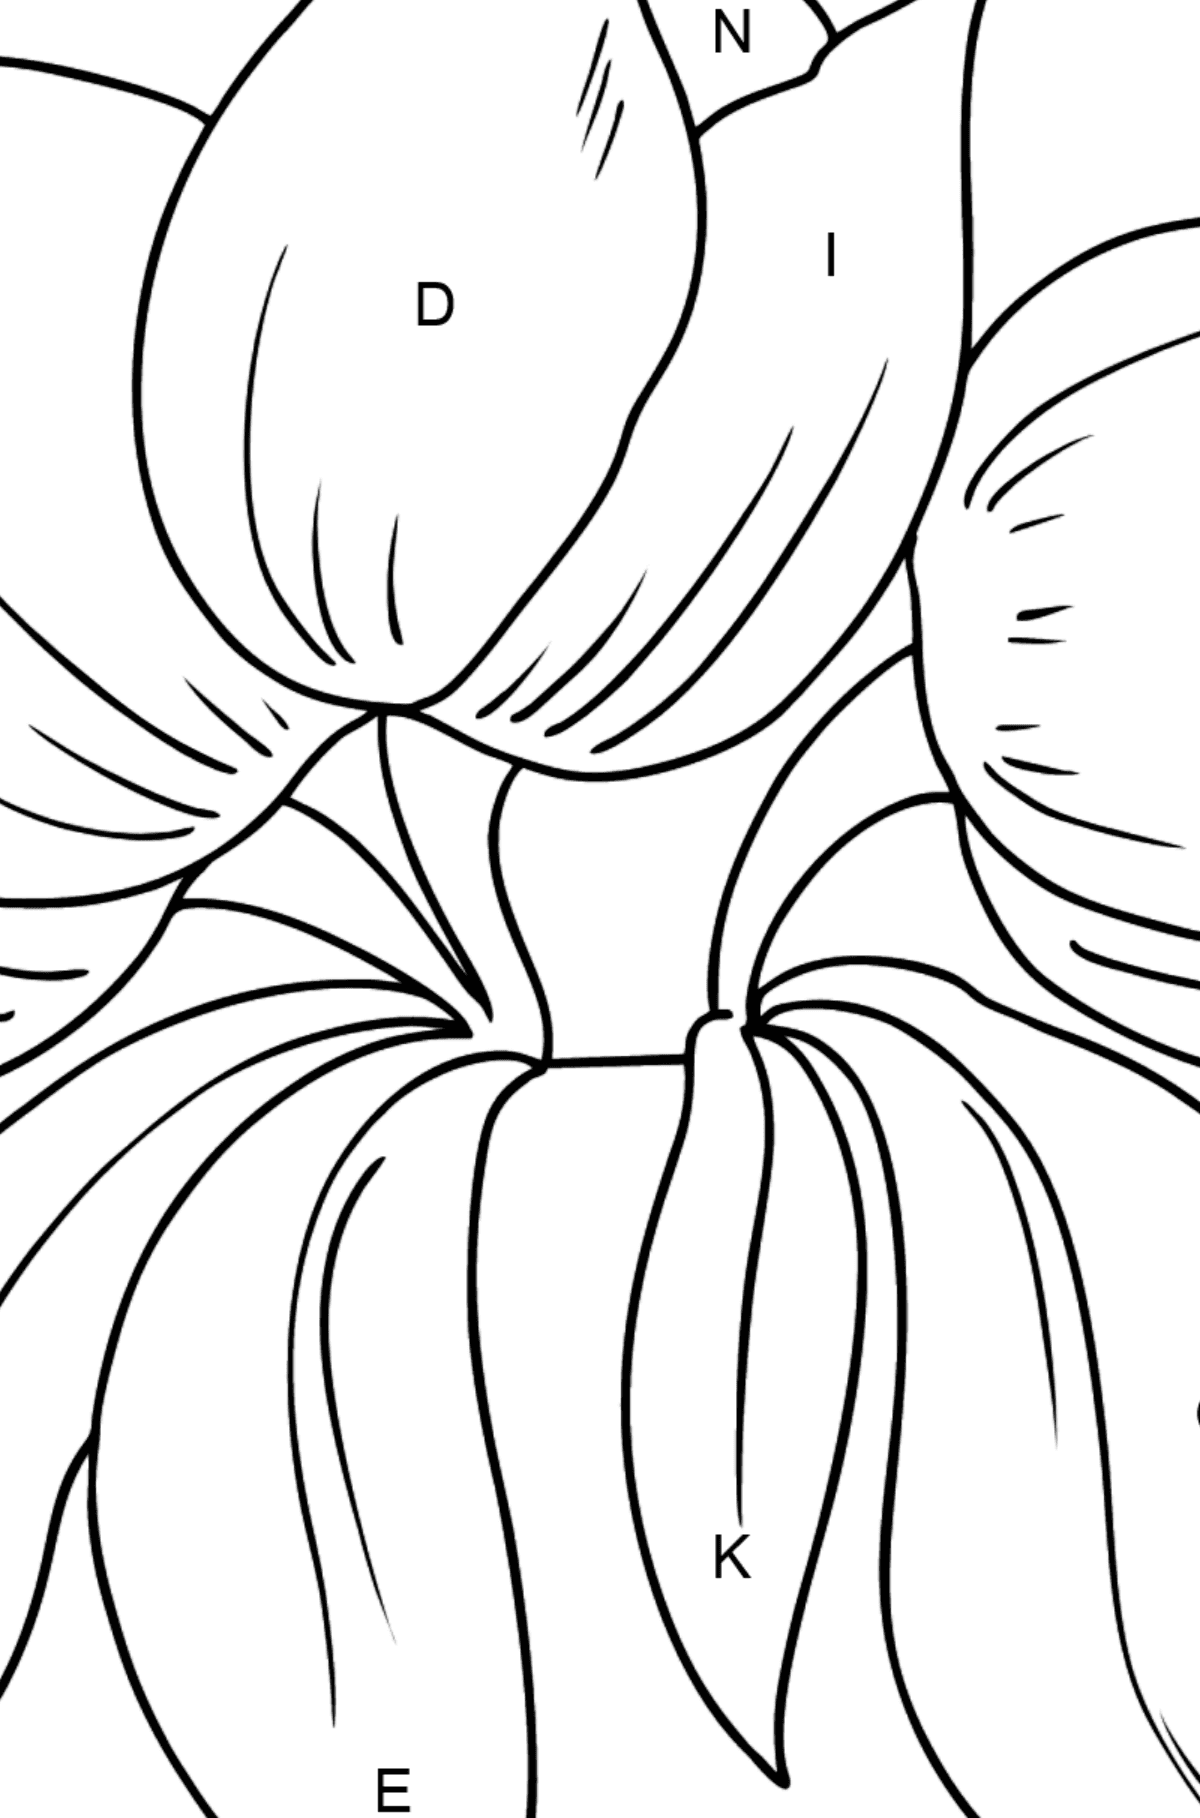 Flower Coloring Page - Tulips - Coloring by Letters for Kids